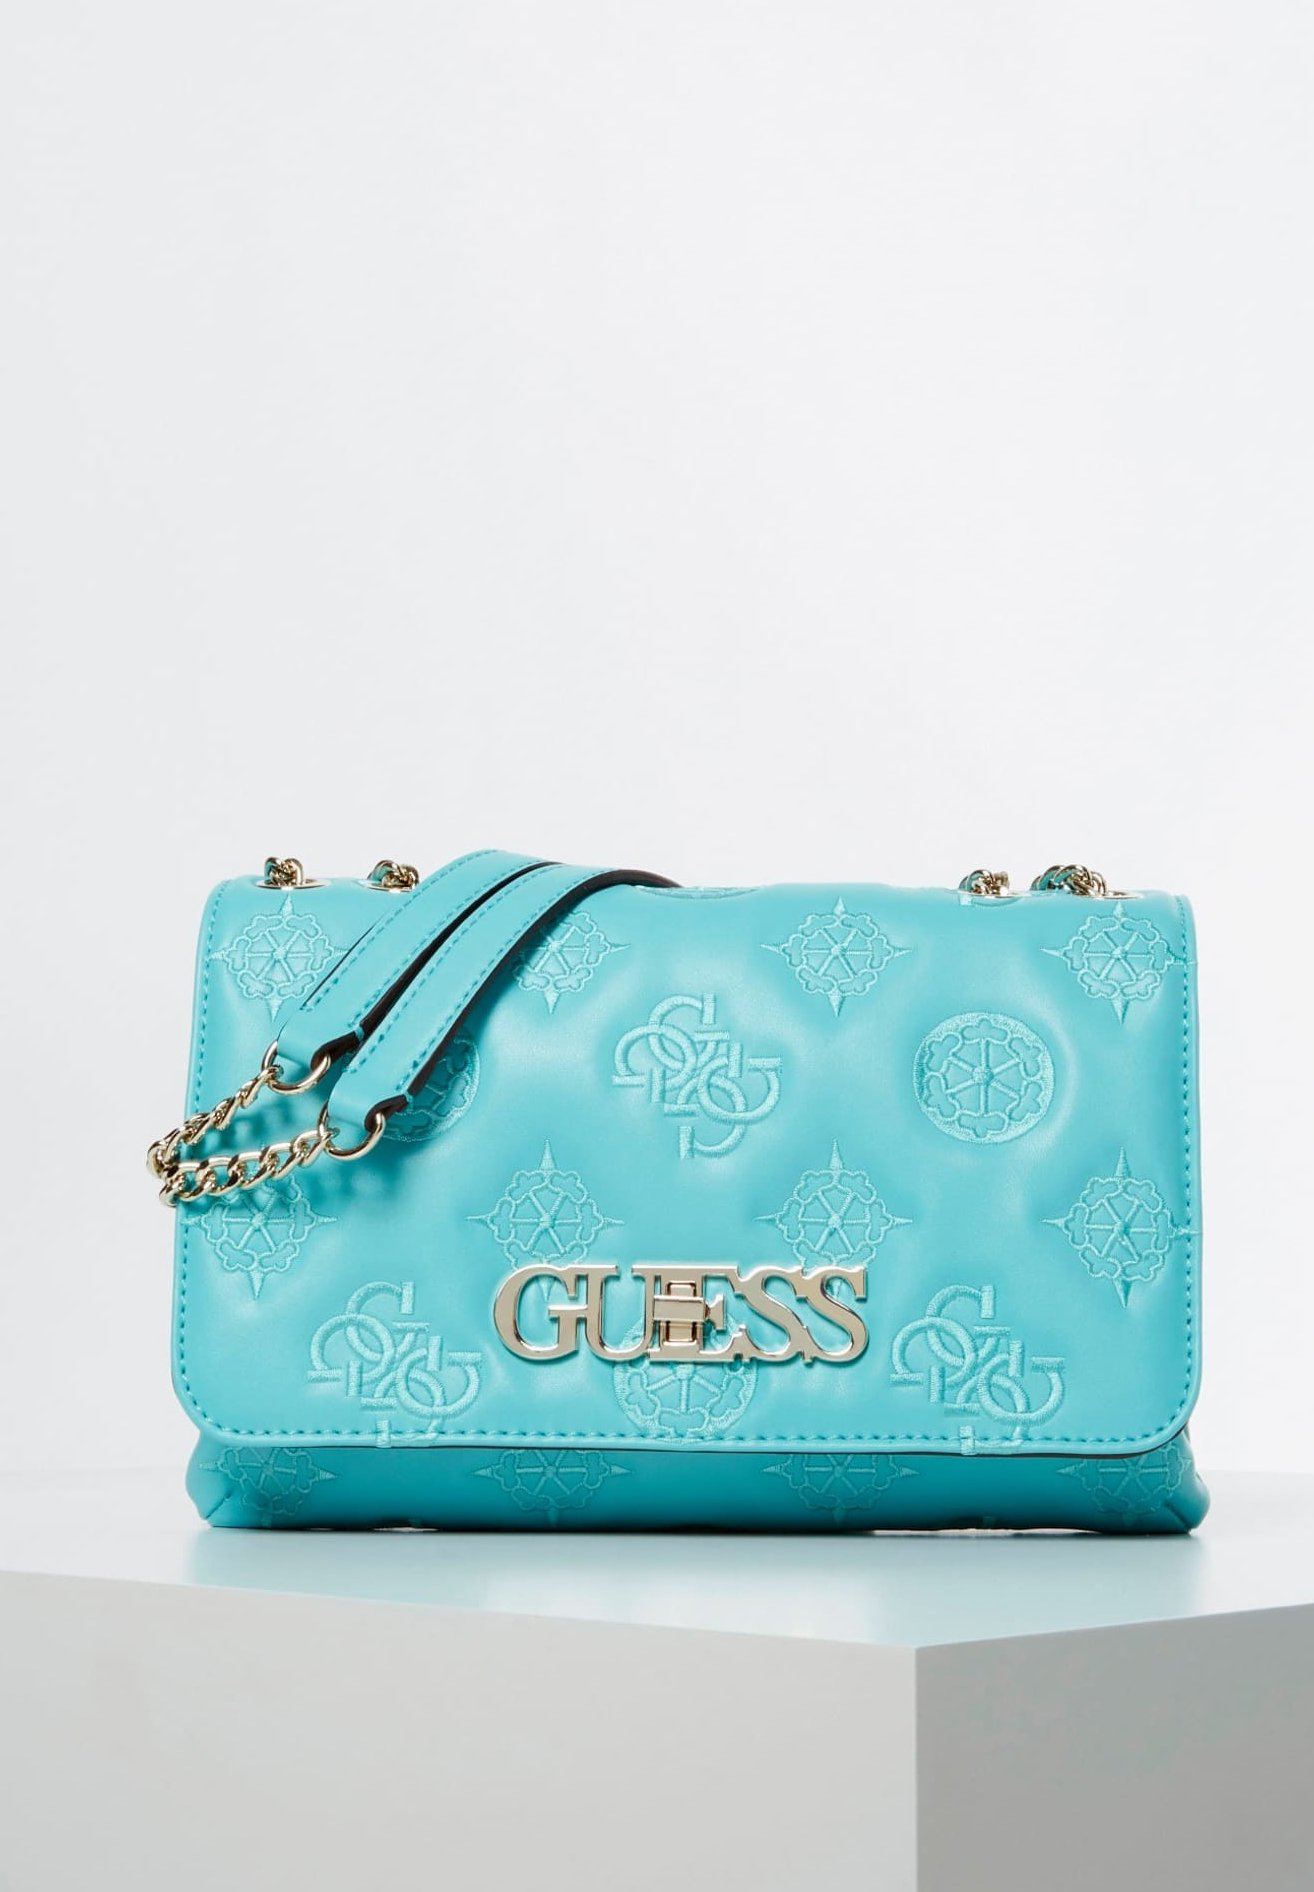 Guess Umhängetasche - Turquoise/türkis